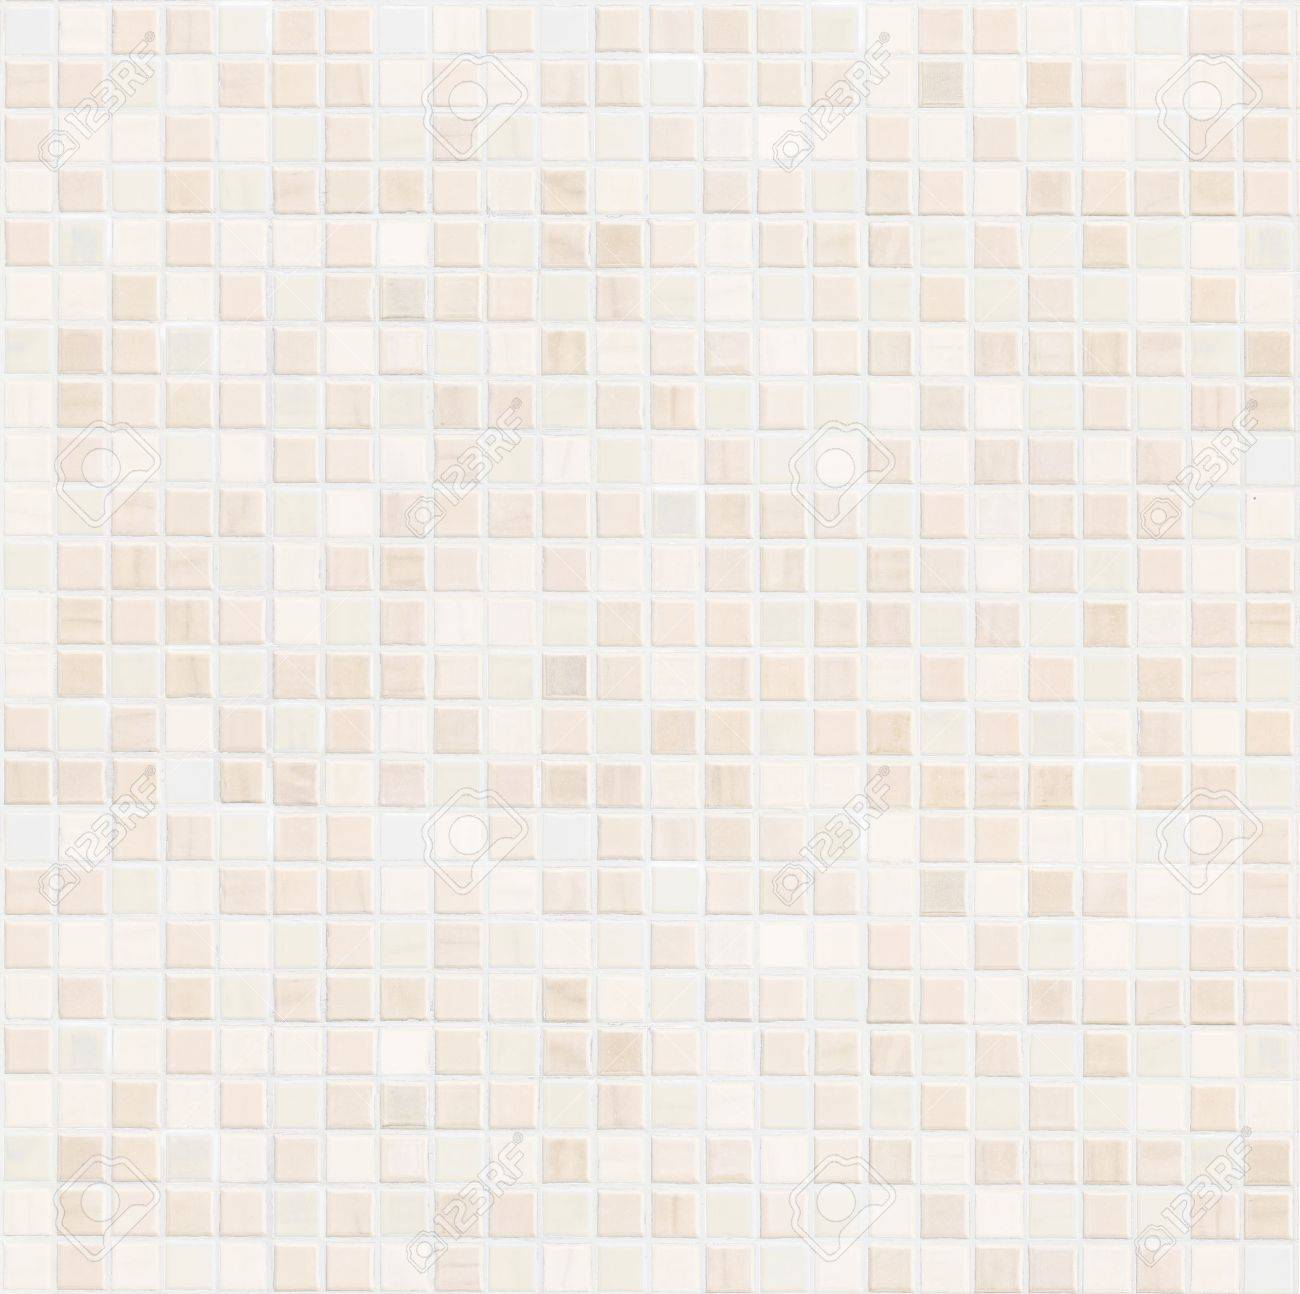 Beige Ceramic Bathroom Wall Tile Pattern For Background Stock Photo ...